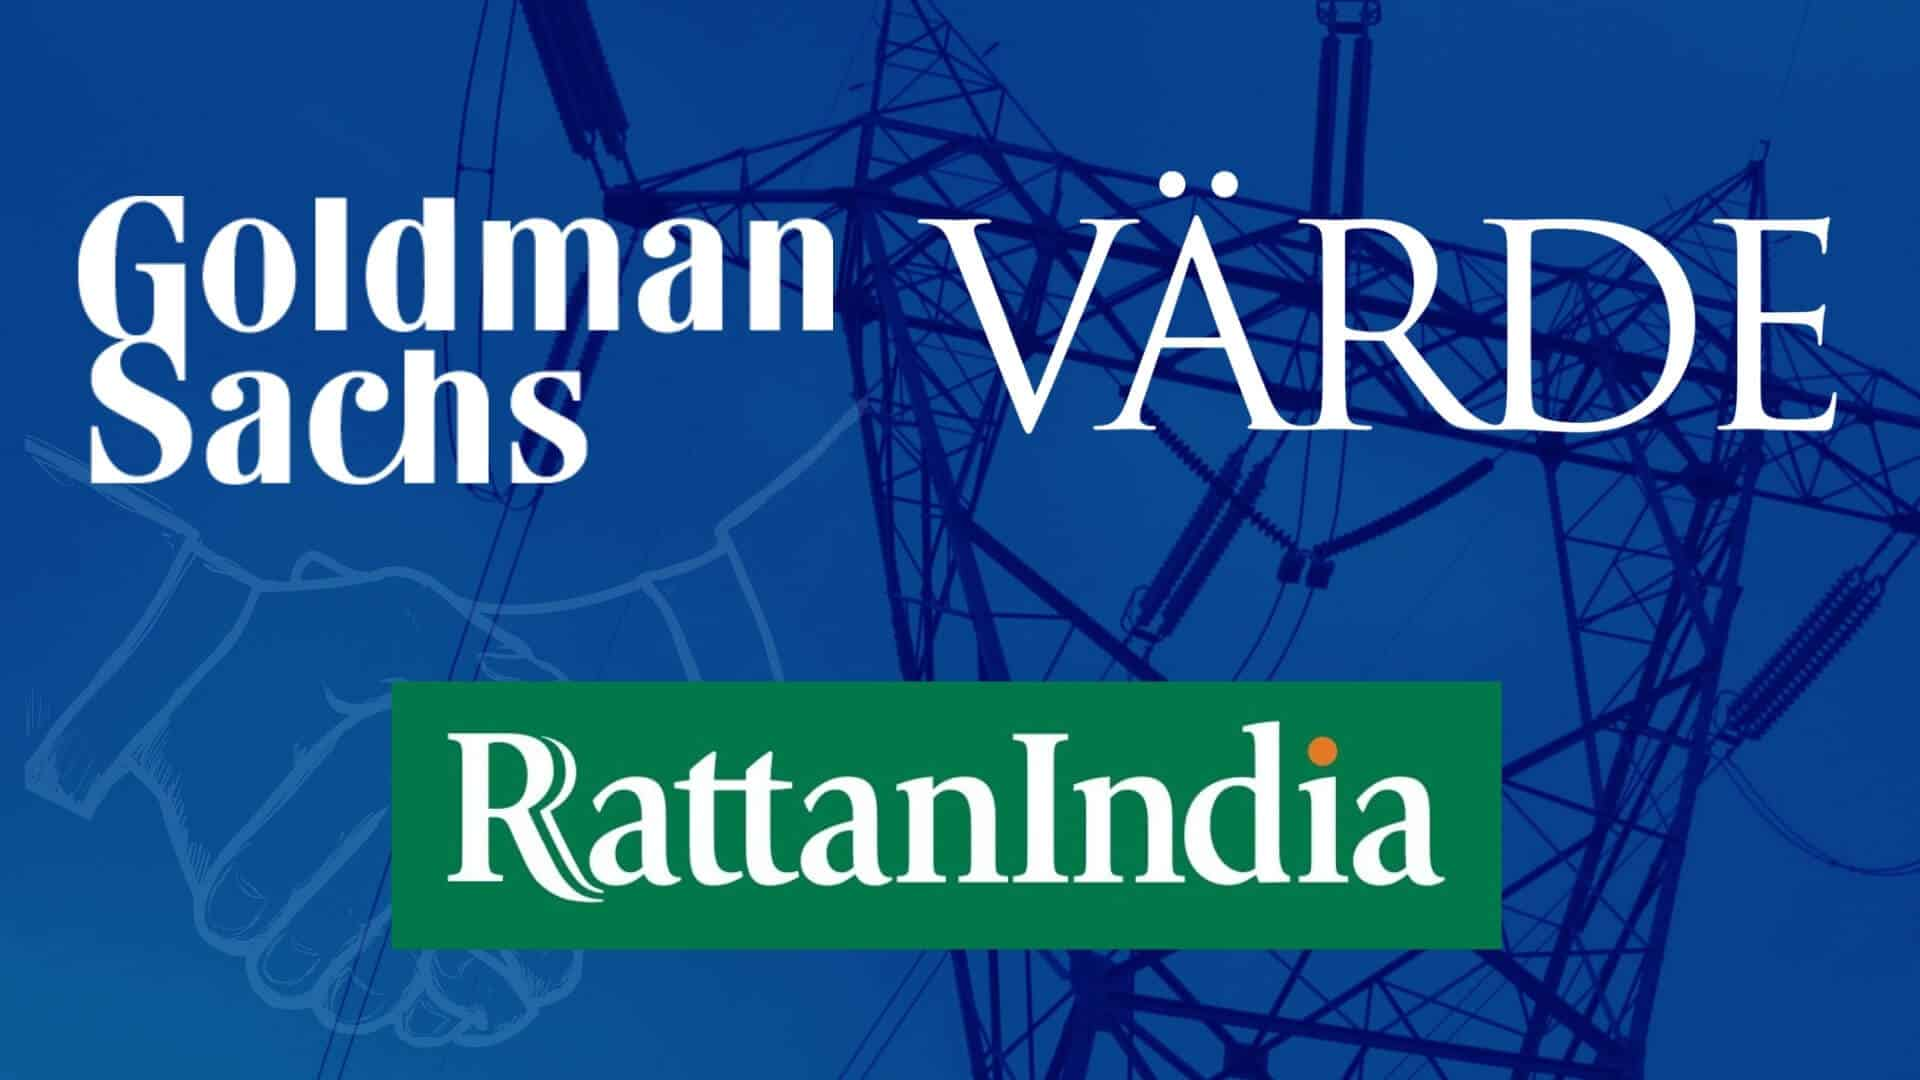 Goldman Sachs Leads RattanIndia Power Debt Deal Worth $922m